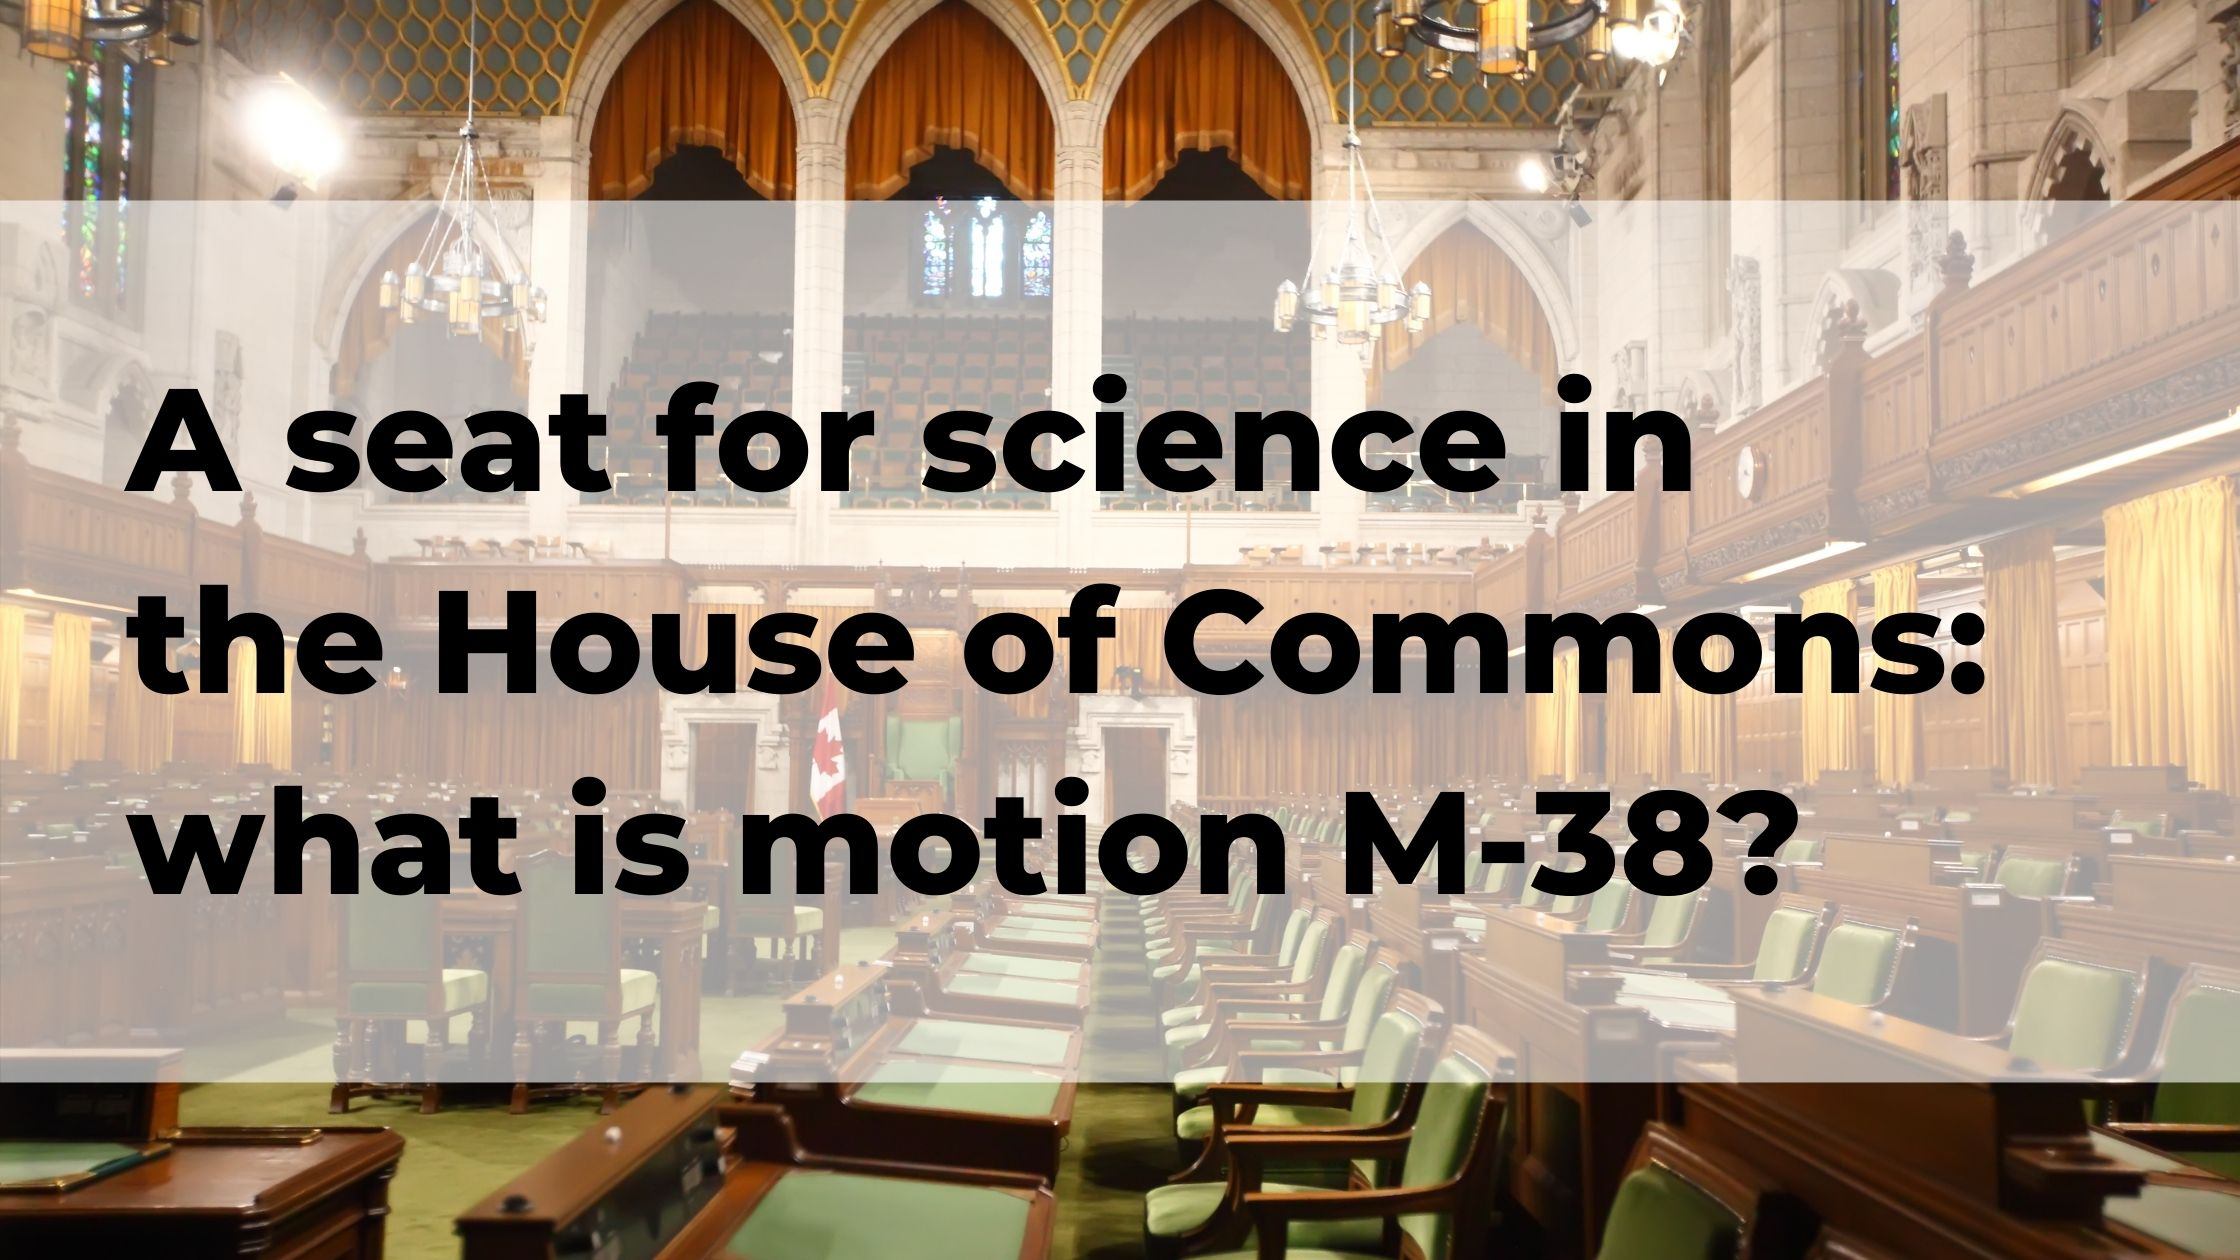 A seat for science in the House of Commons: what is motion M-38?